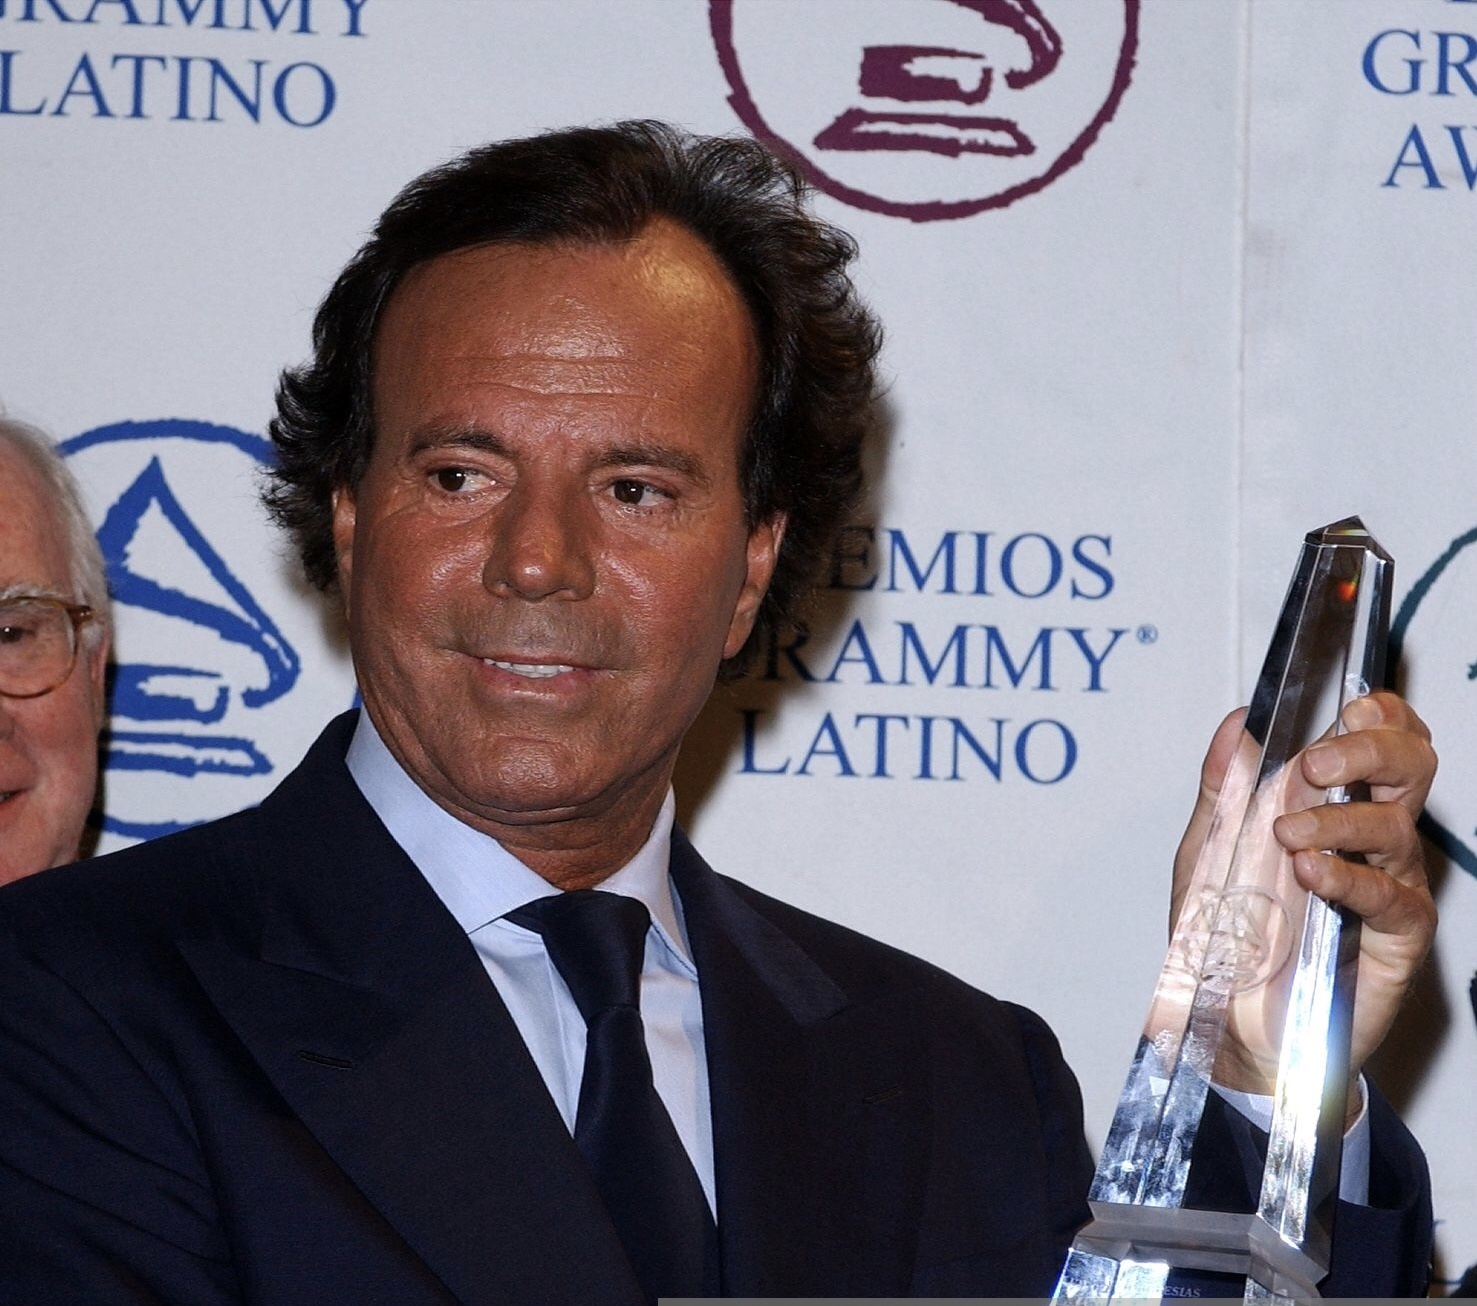 394257 06: Spain's Julio Iglesias receives the Latin Recording Academy's Person of the Year Award at press conference September 10, 2001 in Beverly Hills, CA. The award was part of a gala for nominees of the 2nd Annual Latin Grammy Awards to be held September 11.(Photo by Vince Bucci/Getty Images)